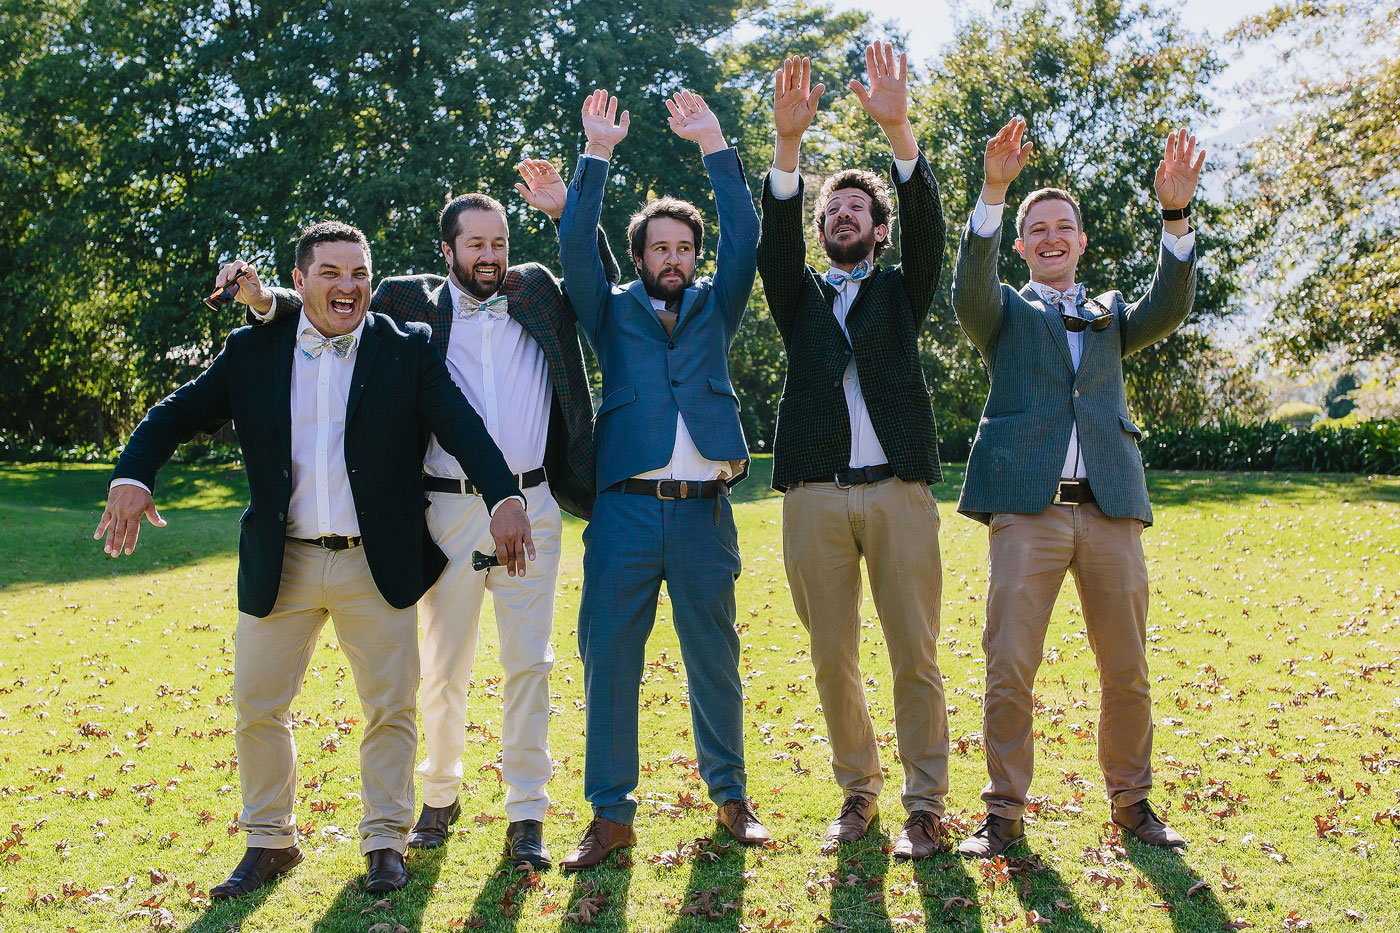 Funny Groomsmen Photo Idea